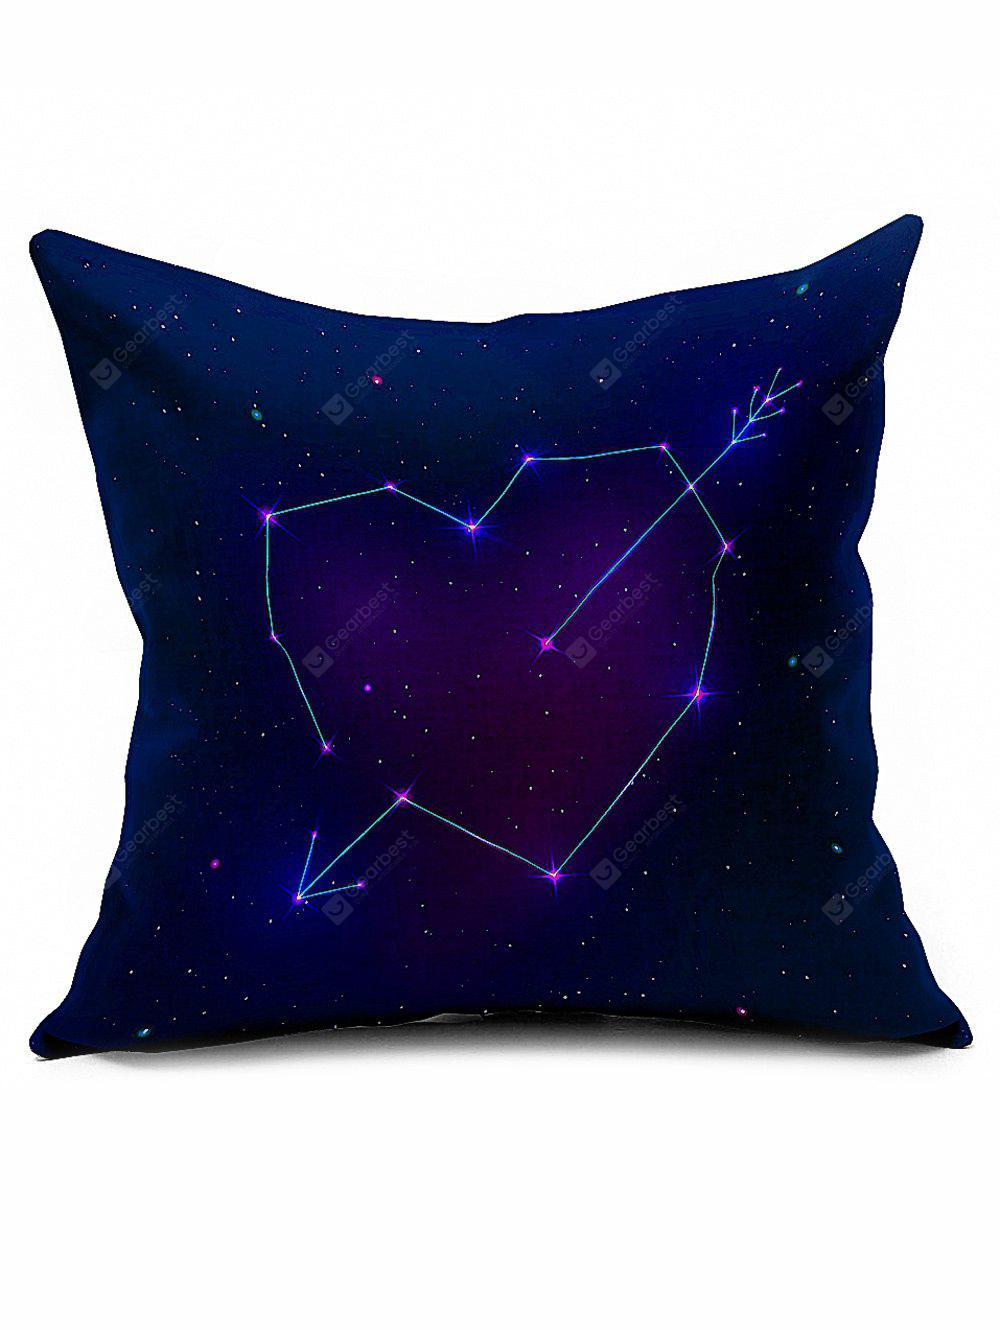 Valentine Gift Starry Cotton Linen Cushion Cover Throw Pillowcase